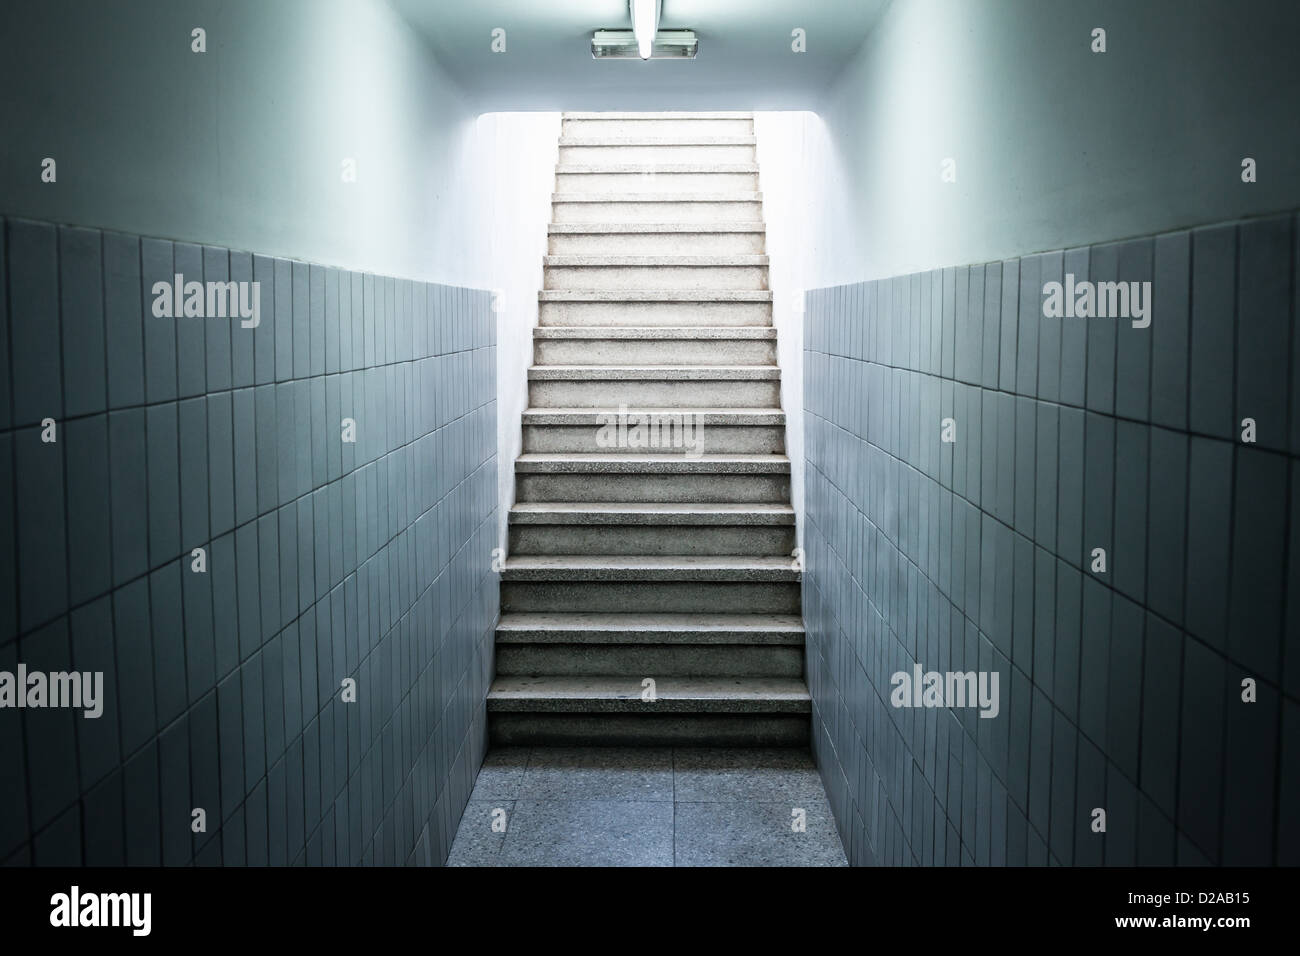 Empty staircase in building - Stock Image